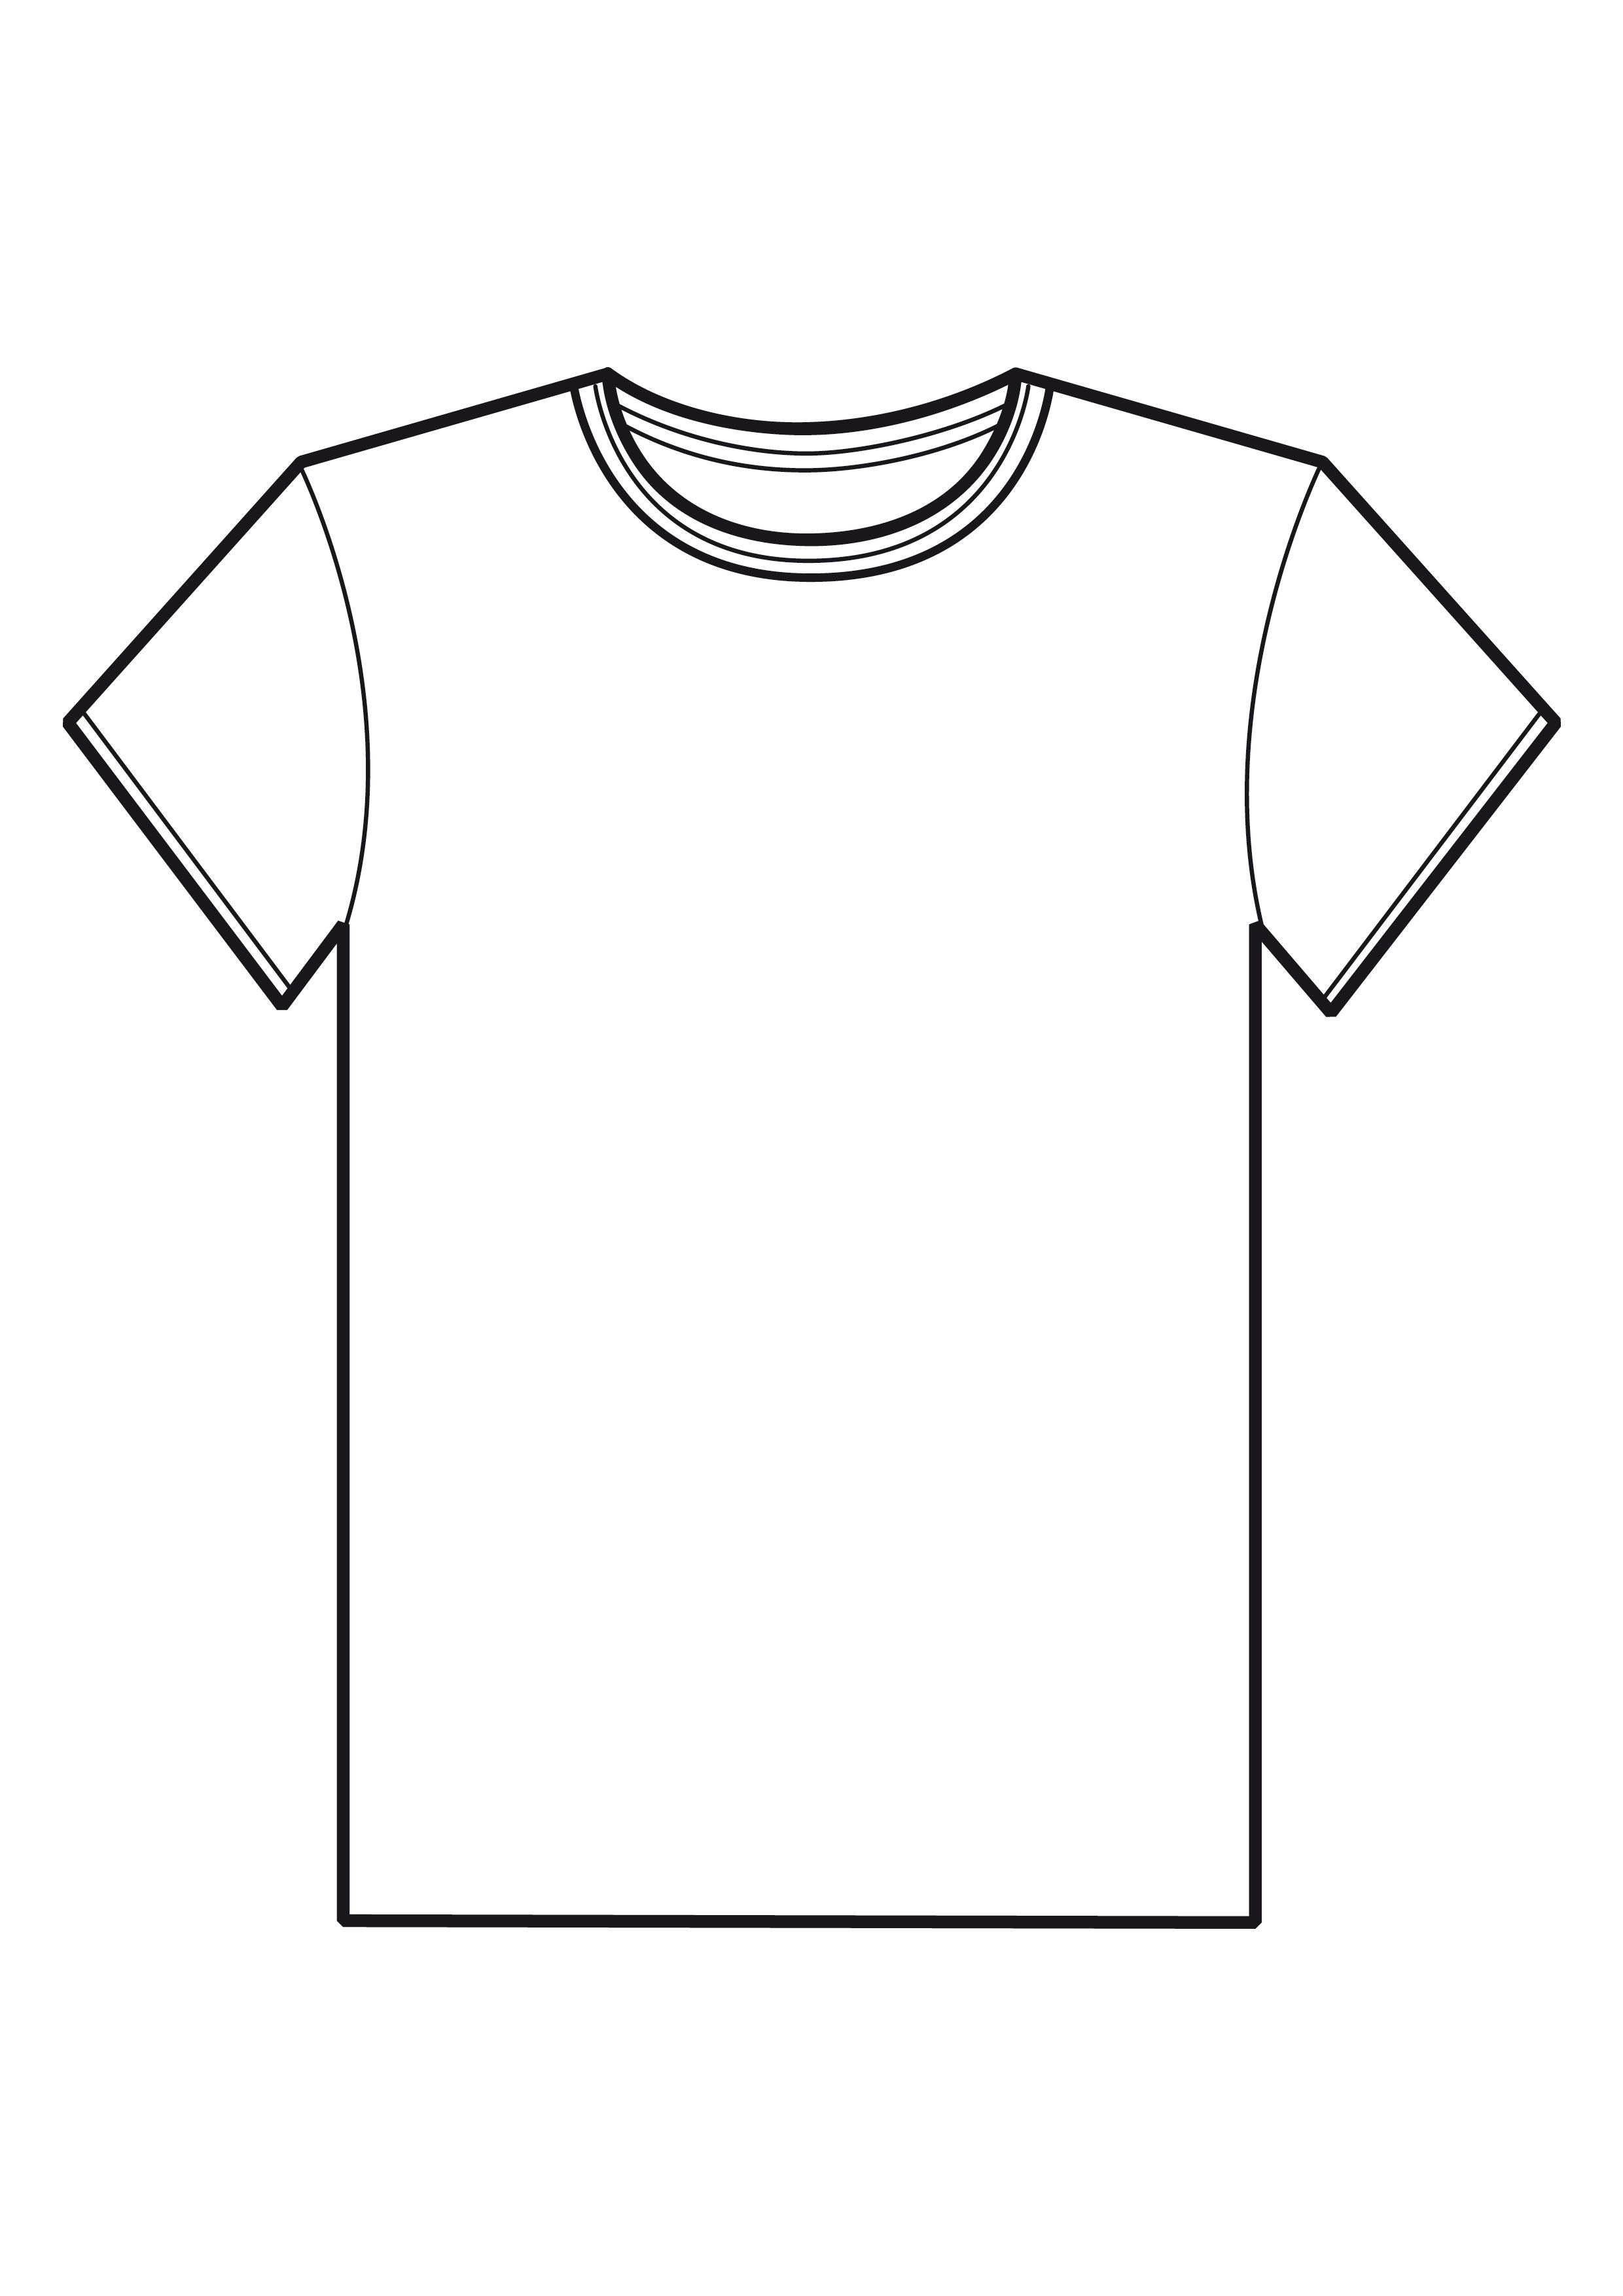 Blank T Shirt Template For Colouring Clipart Best